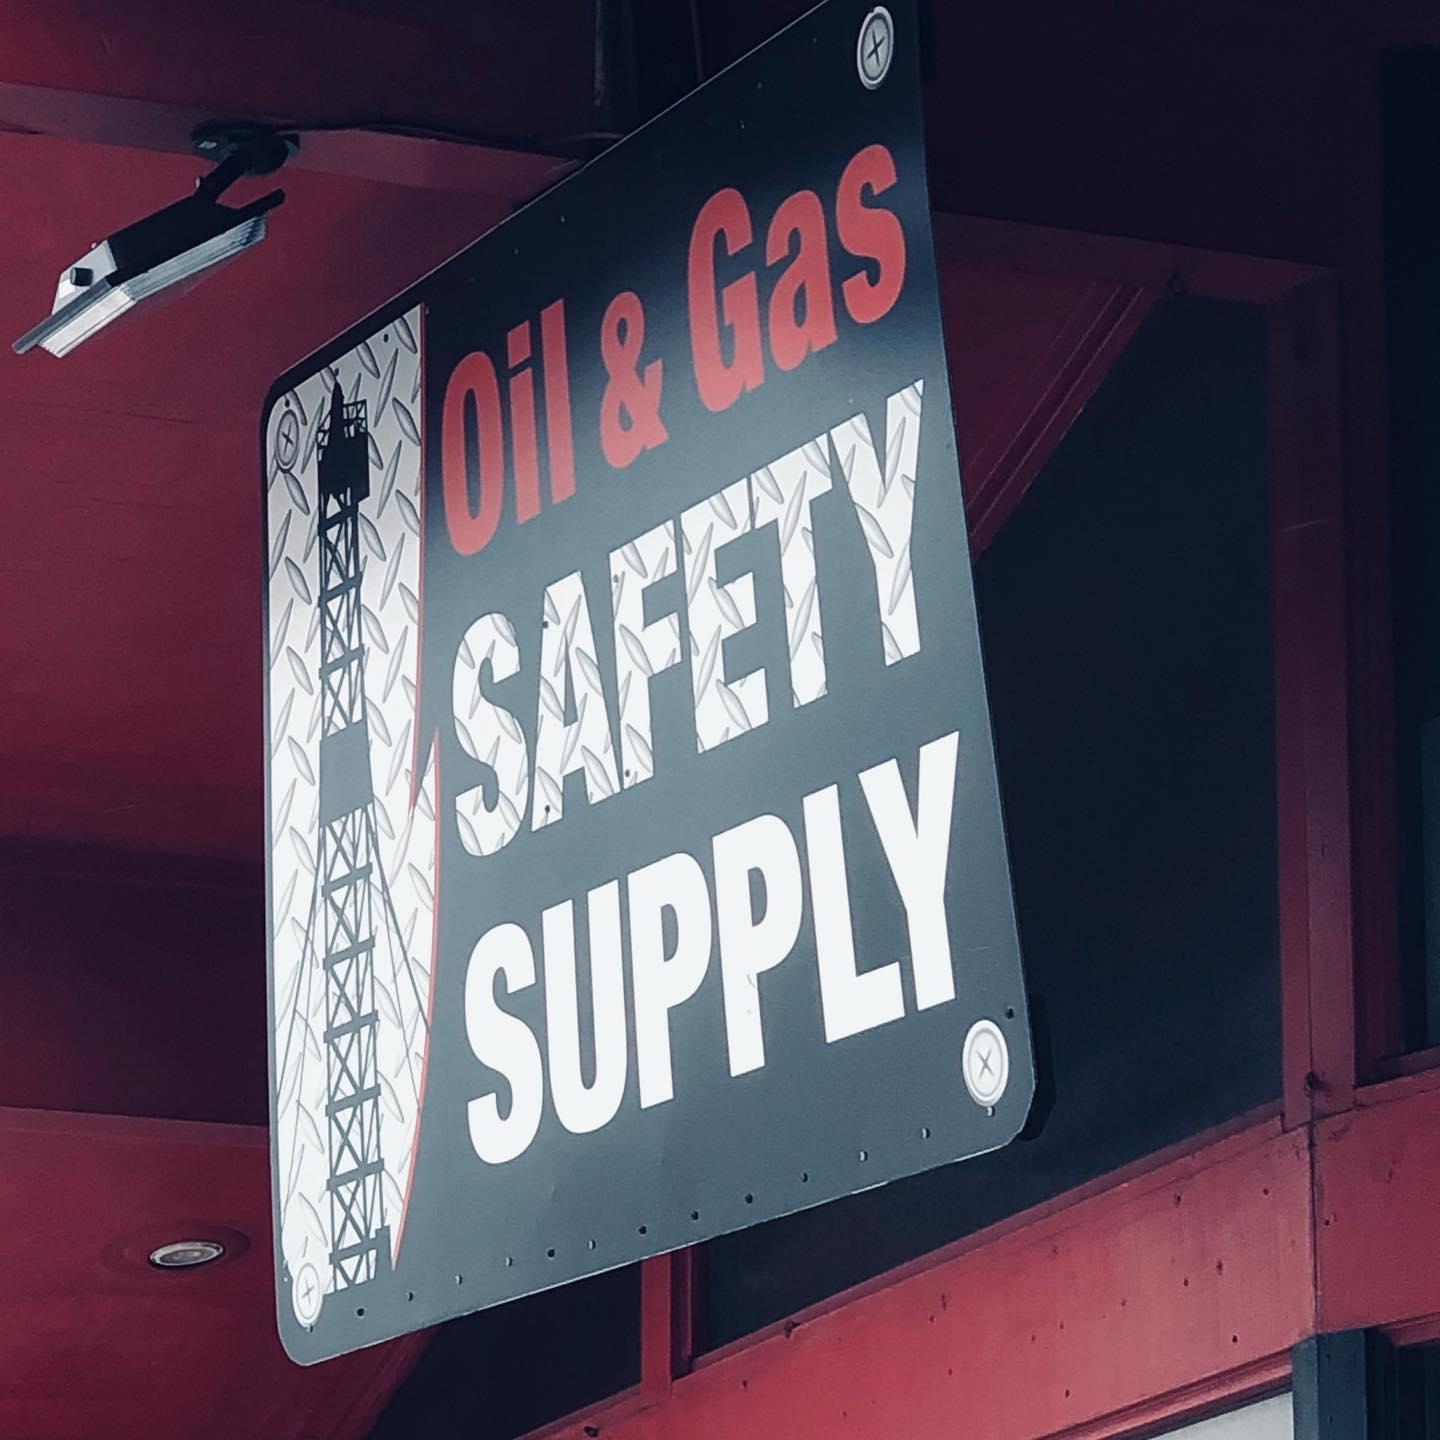 Our favorite PPE store! @oilandgassafety in Washington, PA. #p